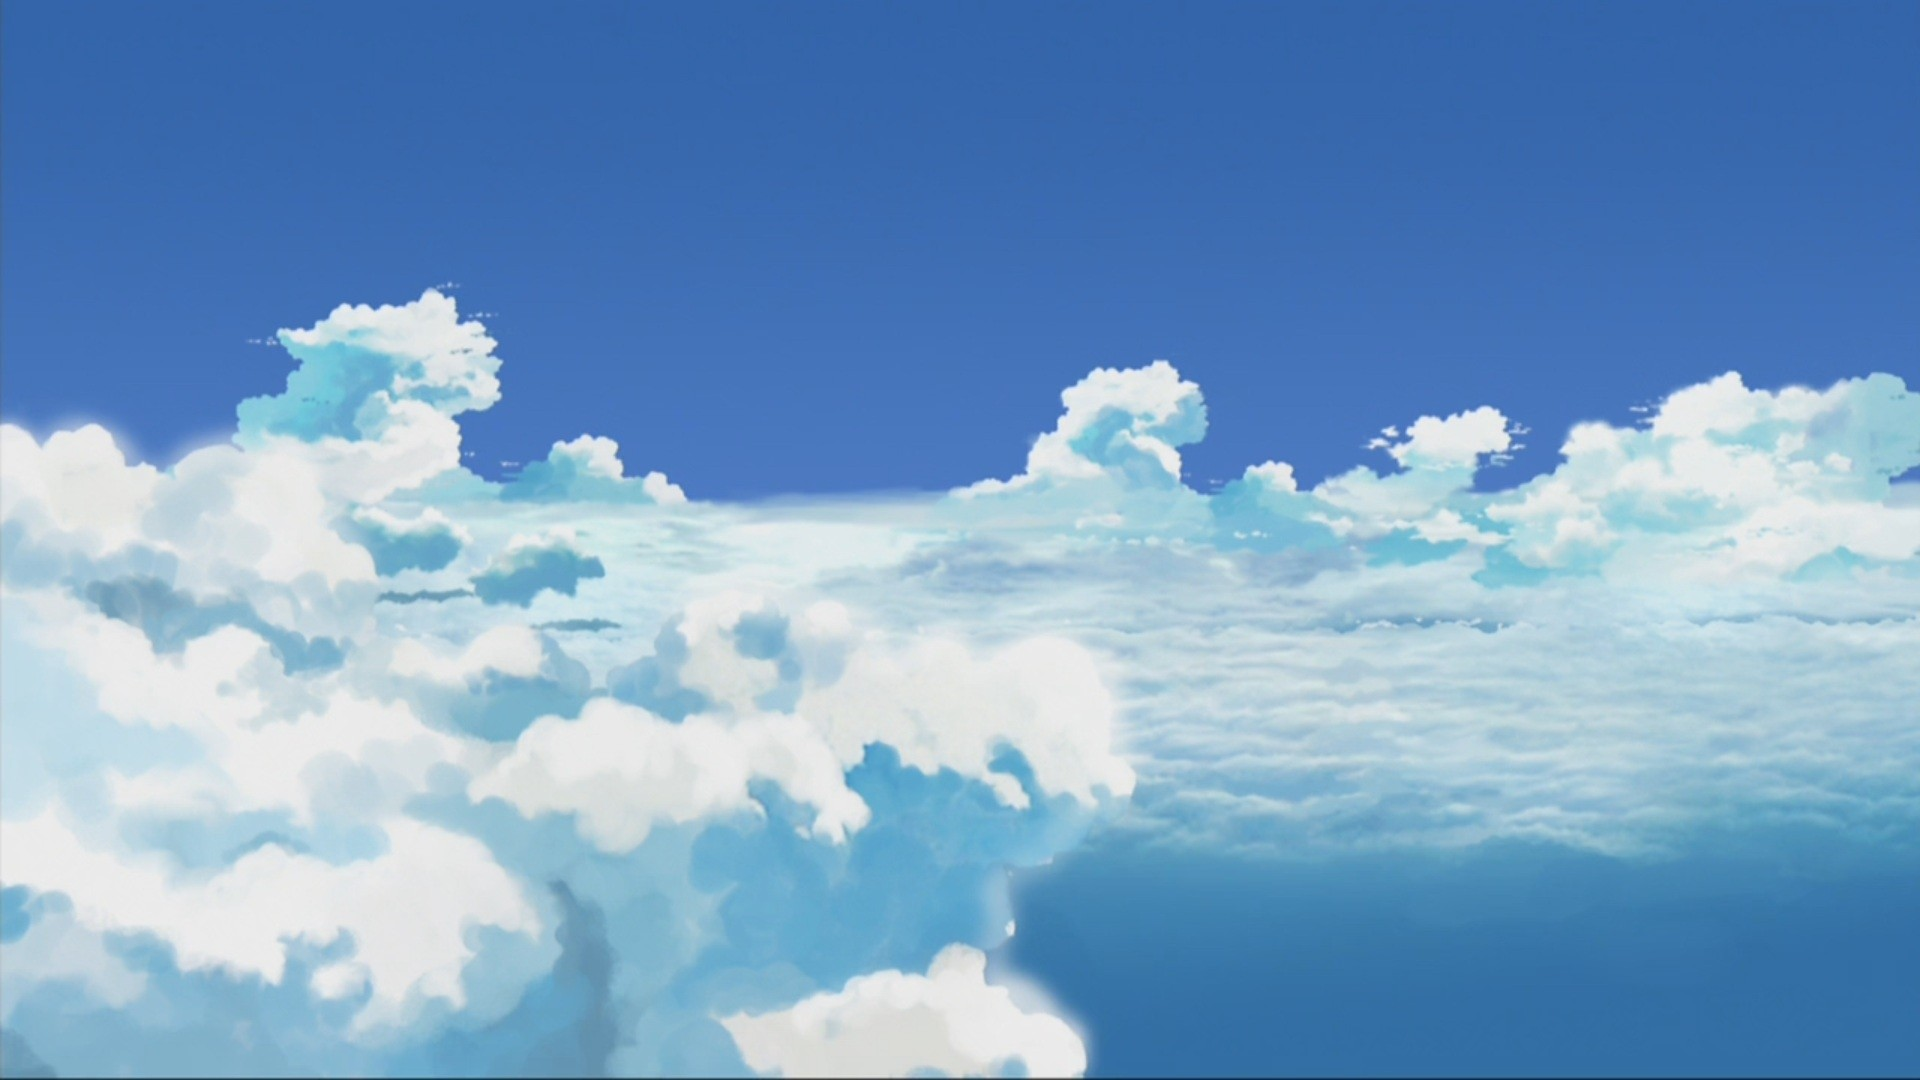 Anime Clouds a wallpaper